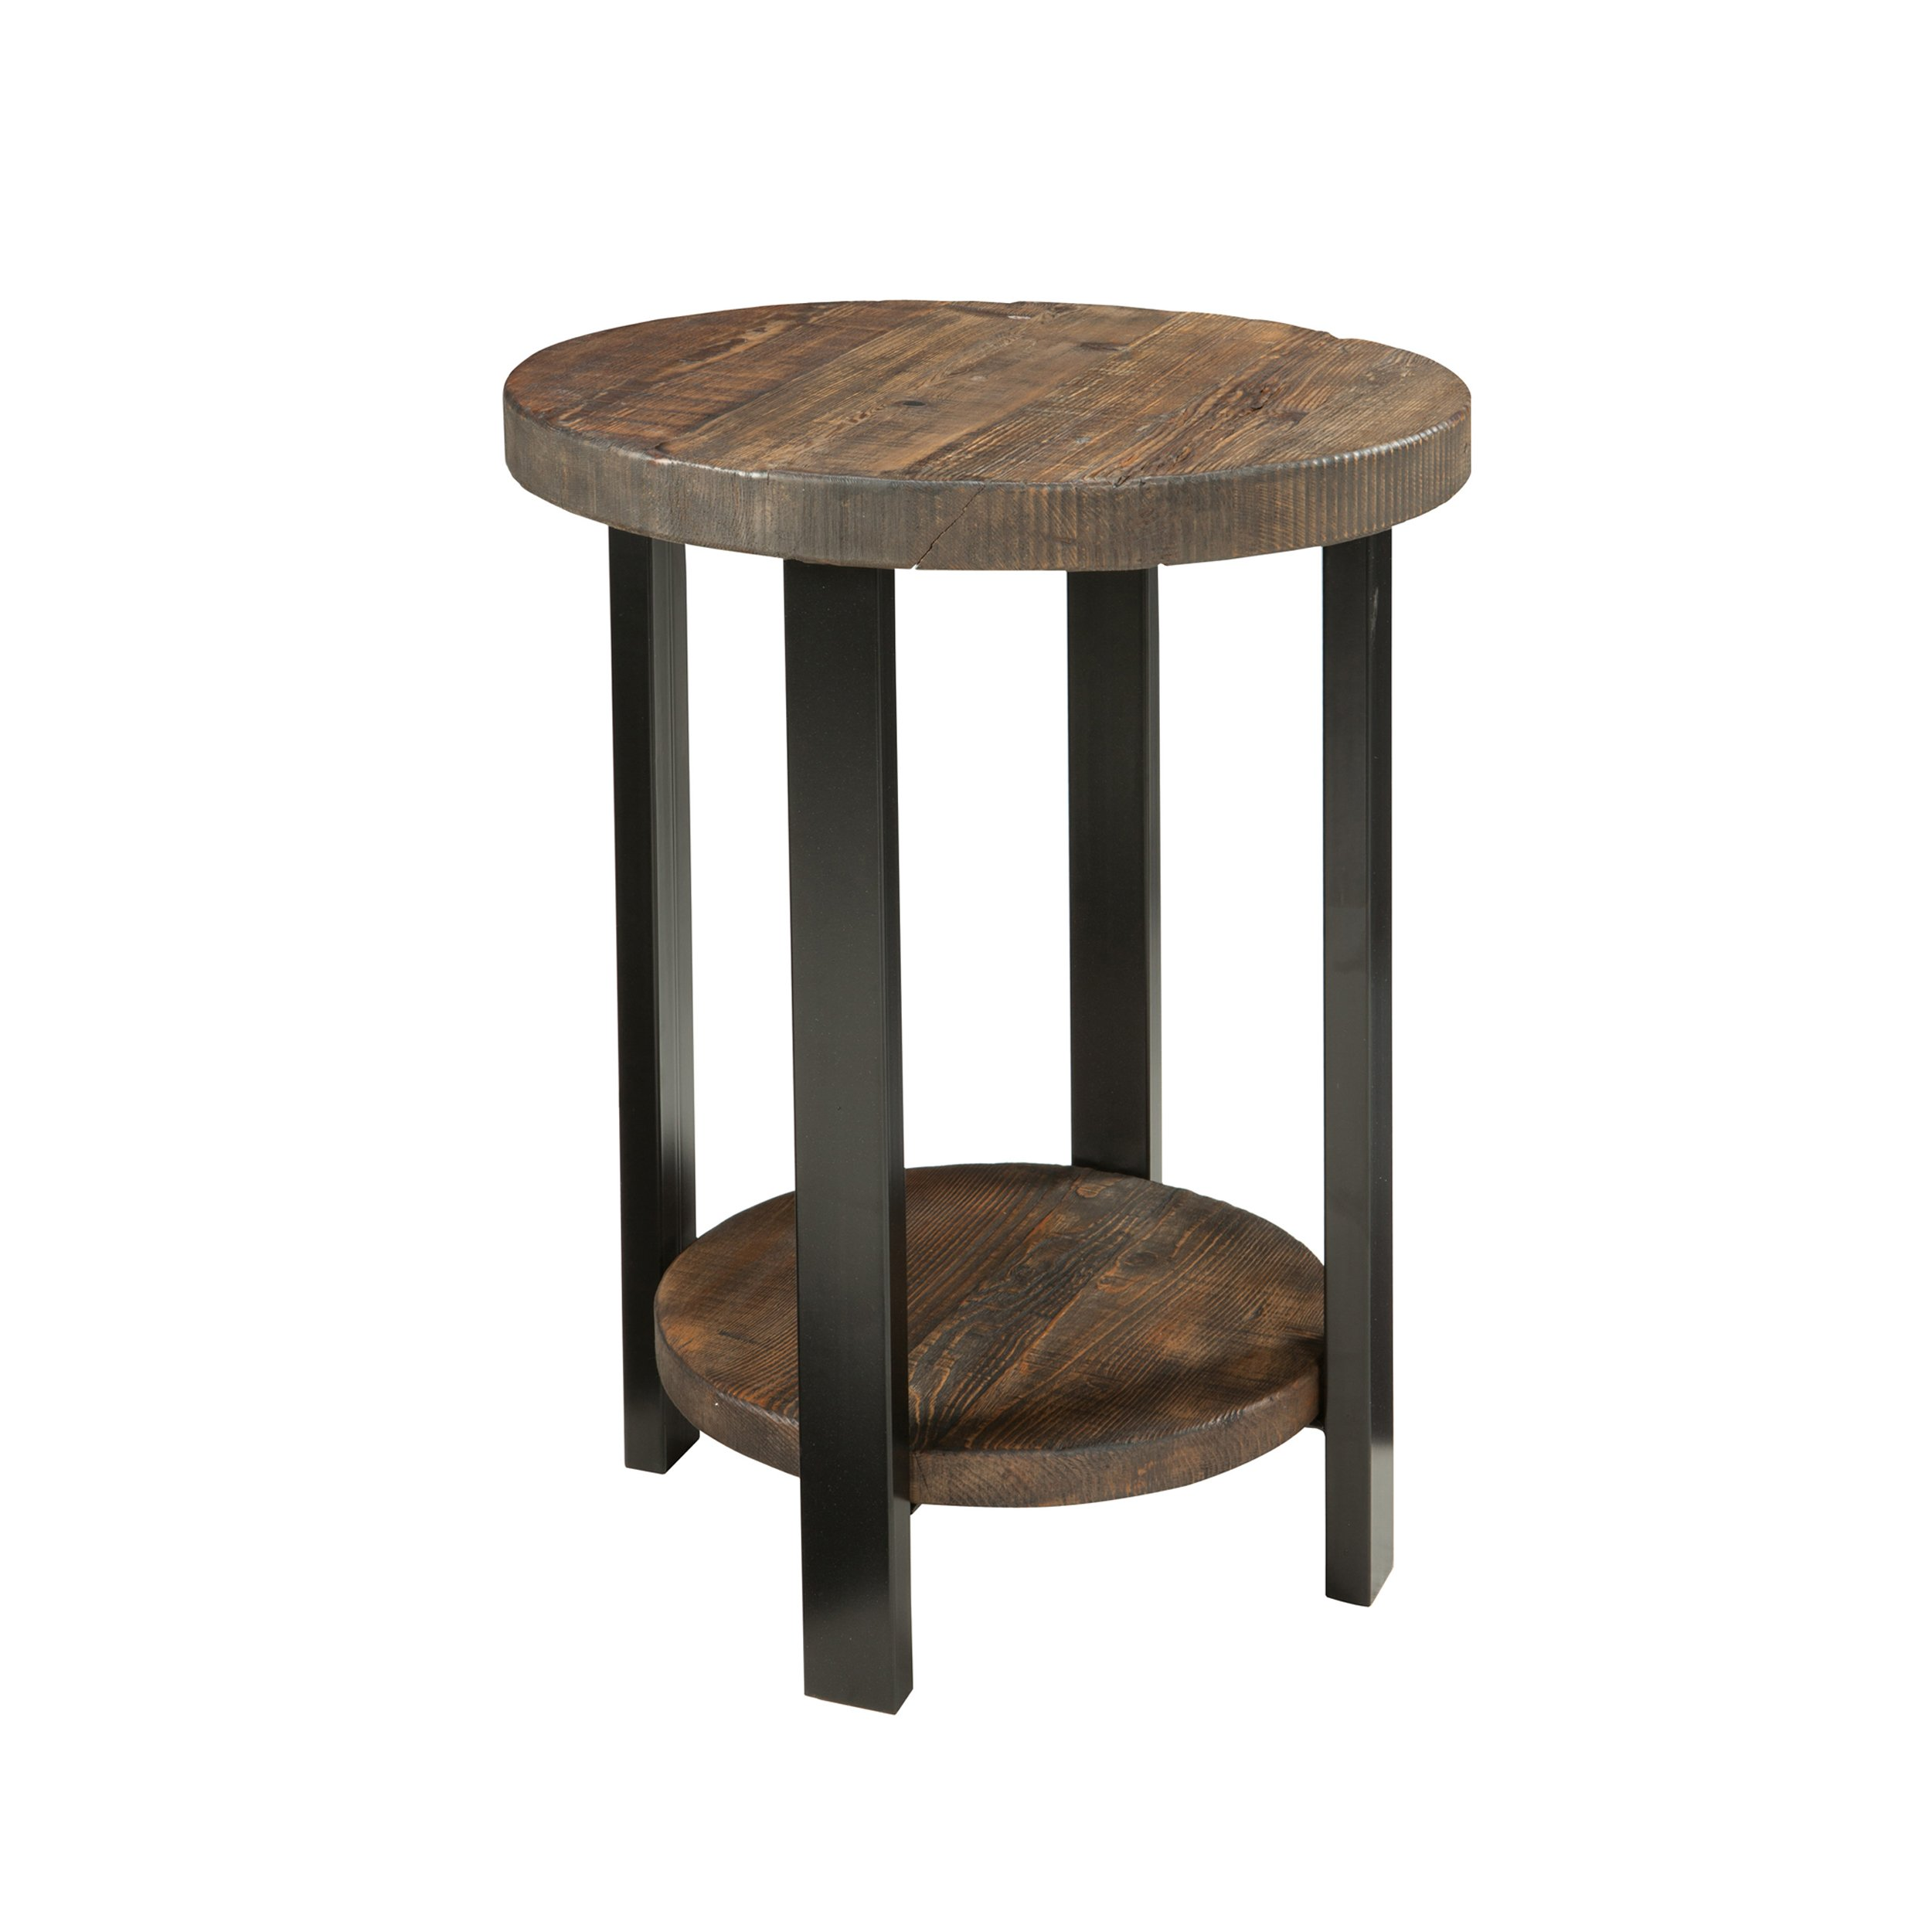 Alaterre AZMBA1520 Sonoma Rustic Natural Round End Table, Brown